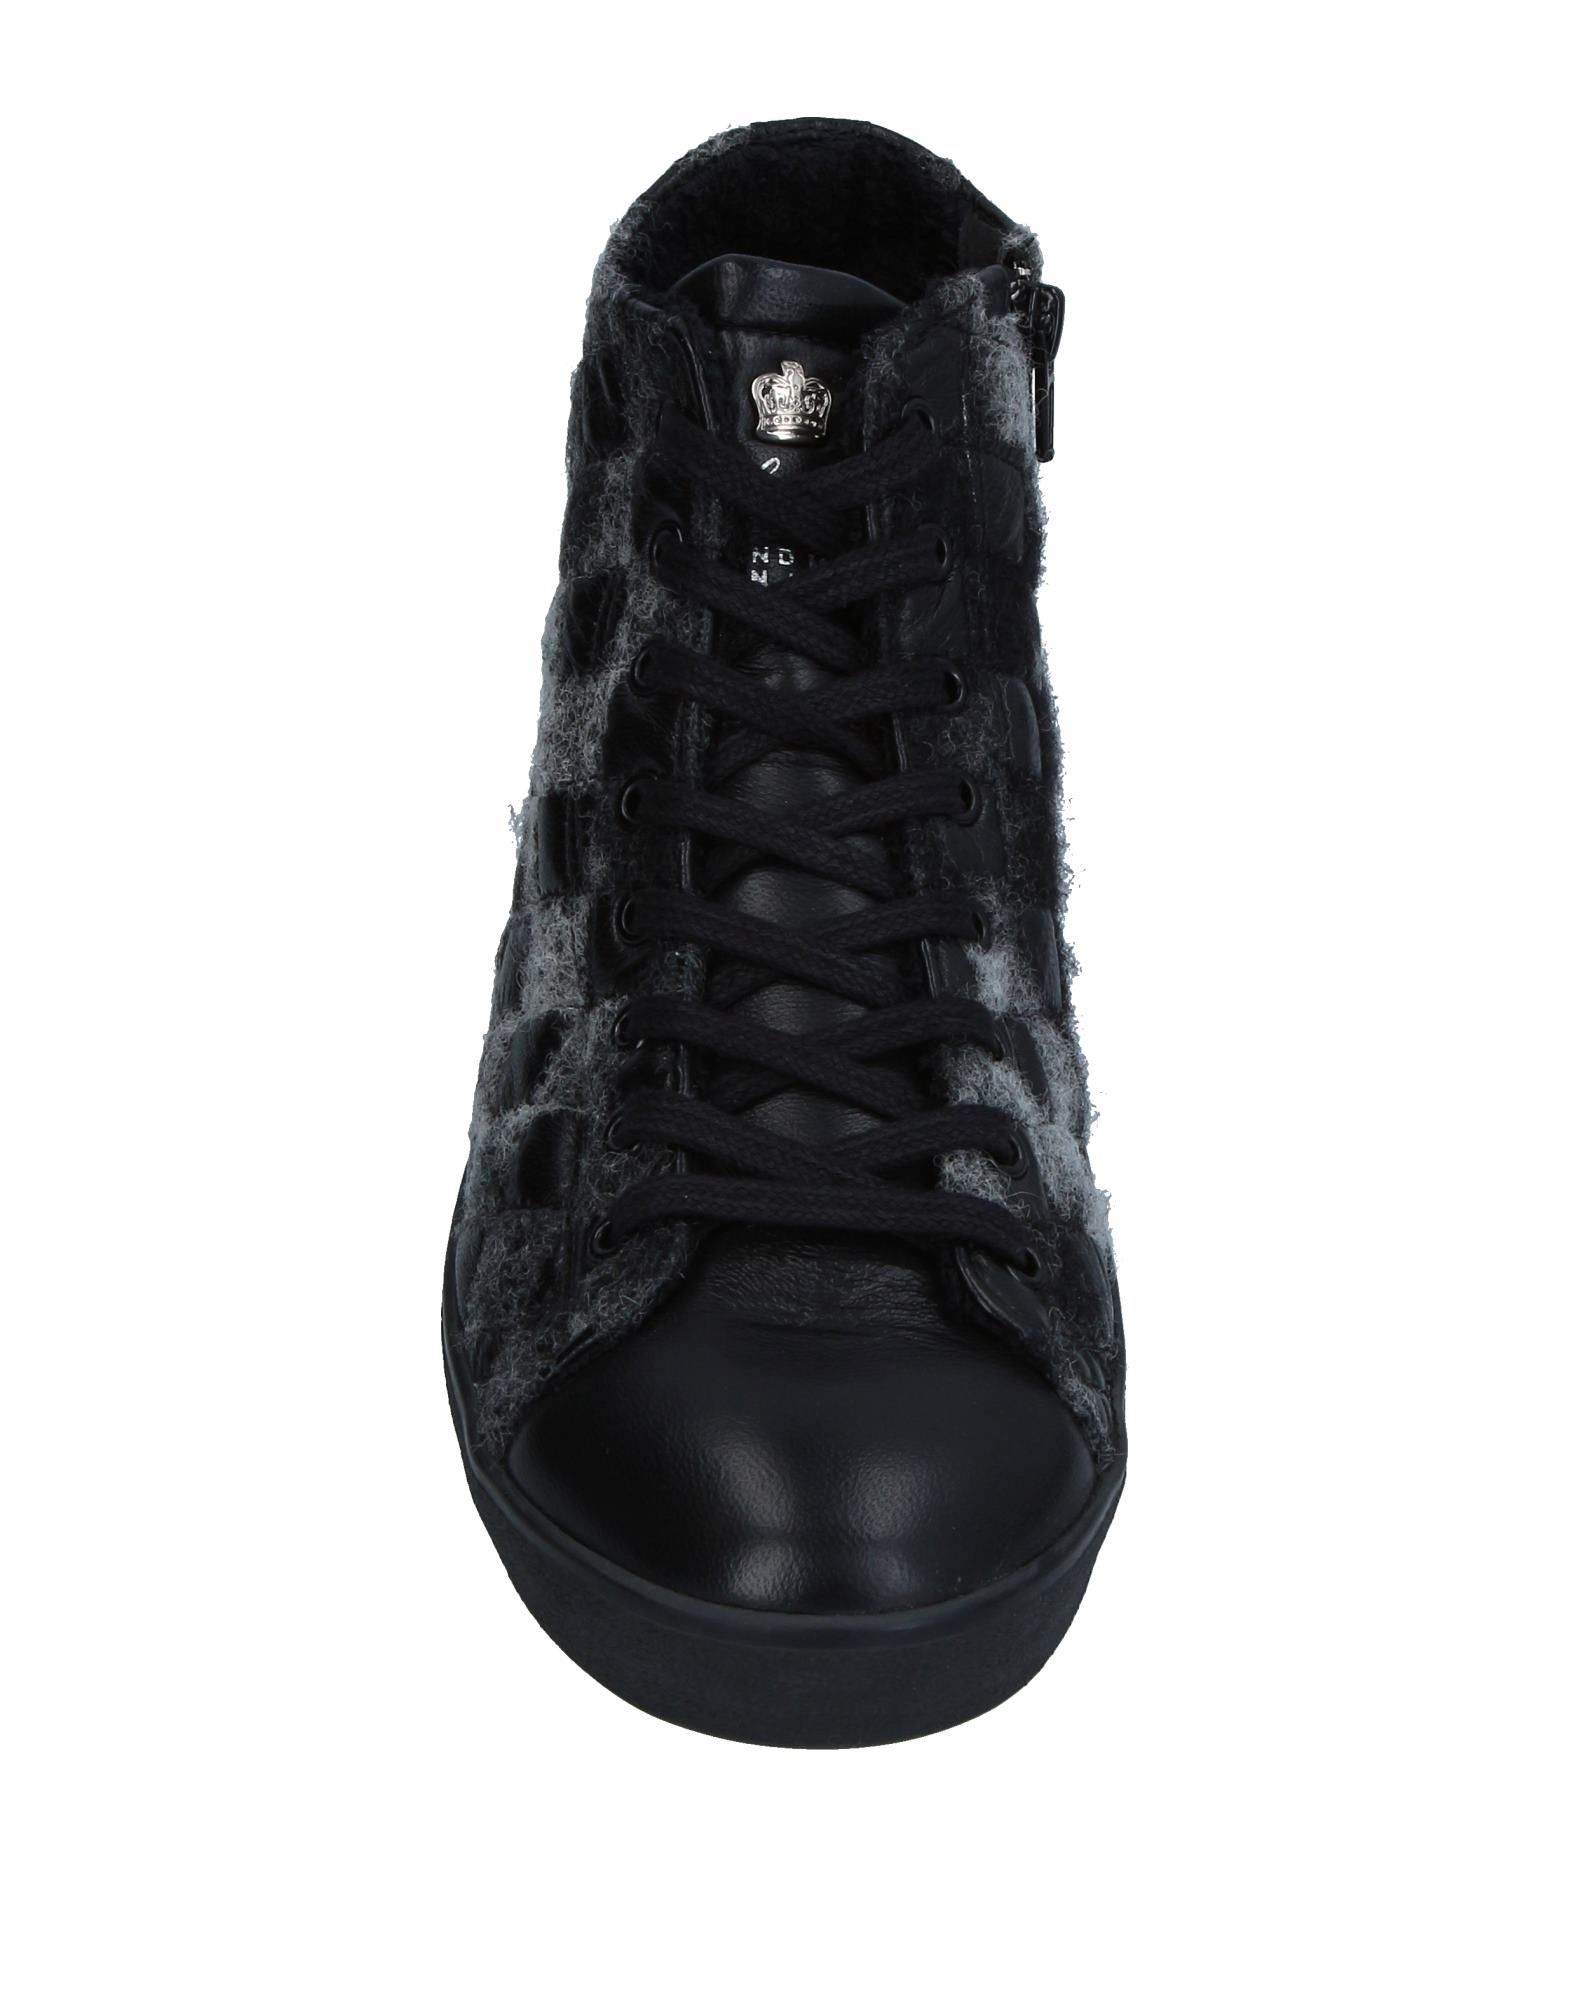 Leather Crown Sneakers - Women Women Women Leather Crown Sneakers online on  United Kingdom - 11309456HP 6b5728